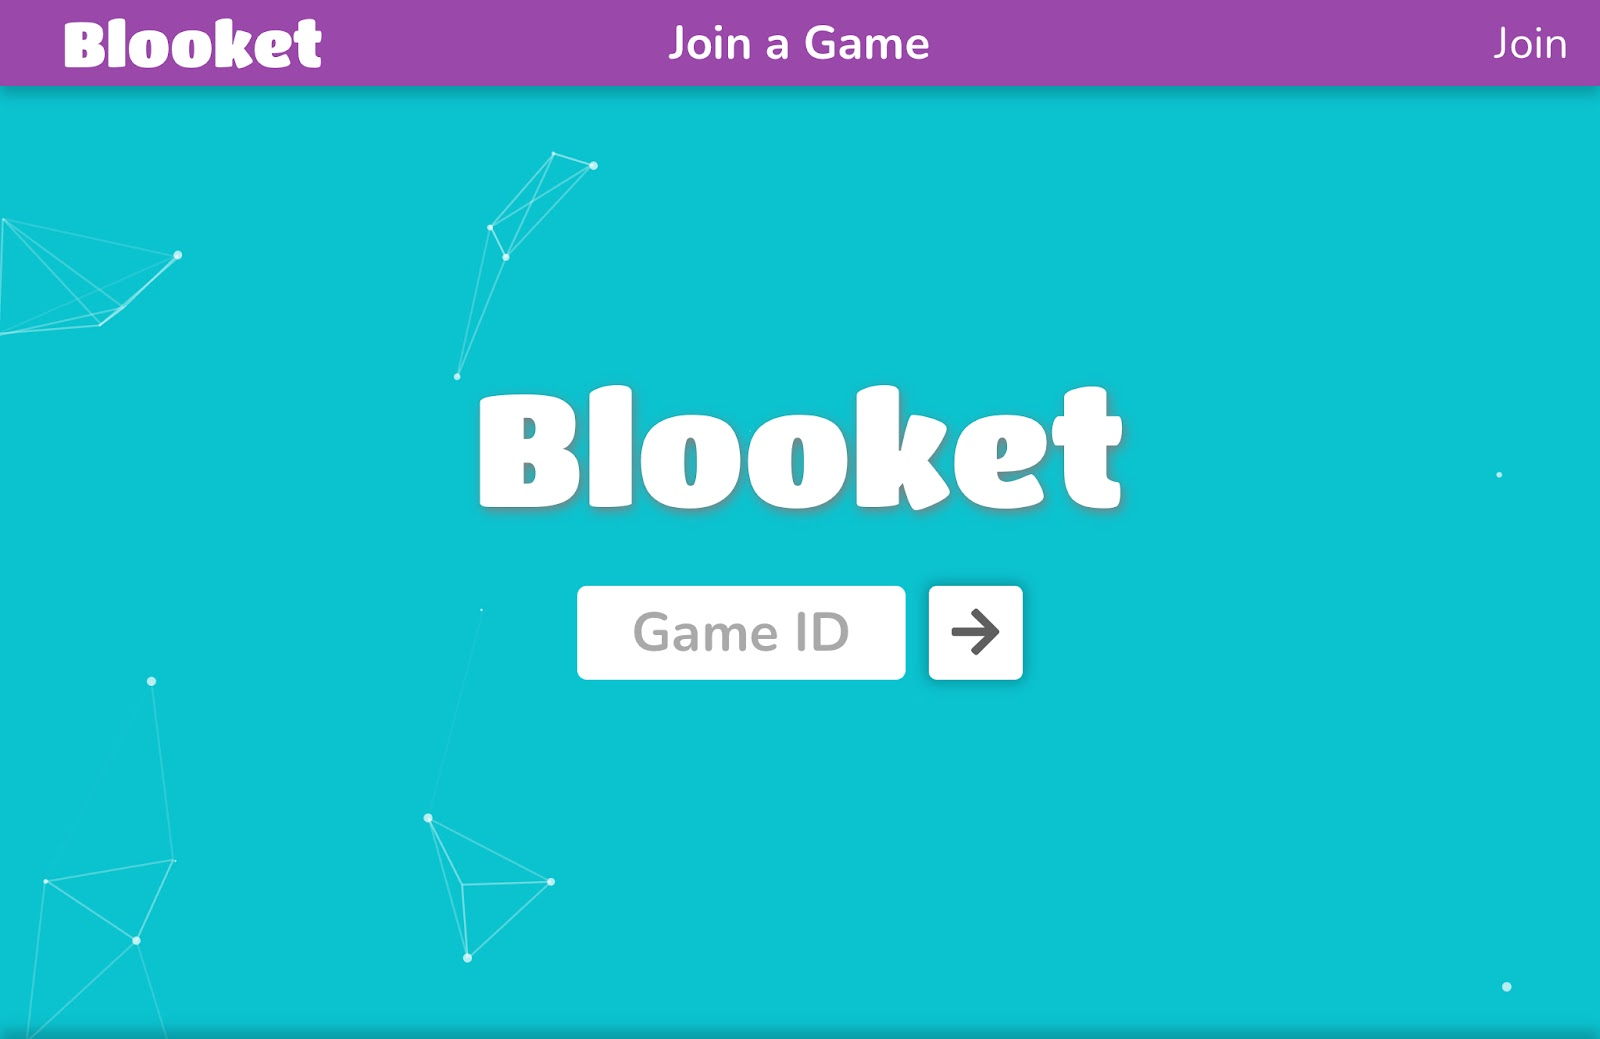 Blooket Join a Game